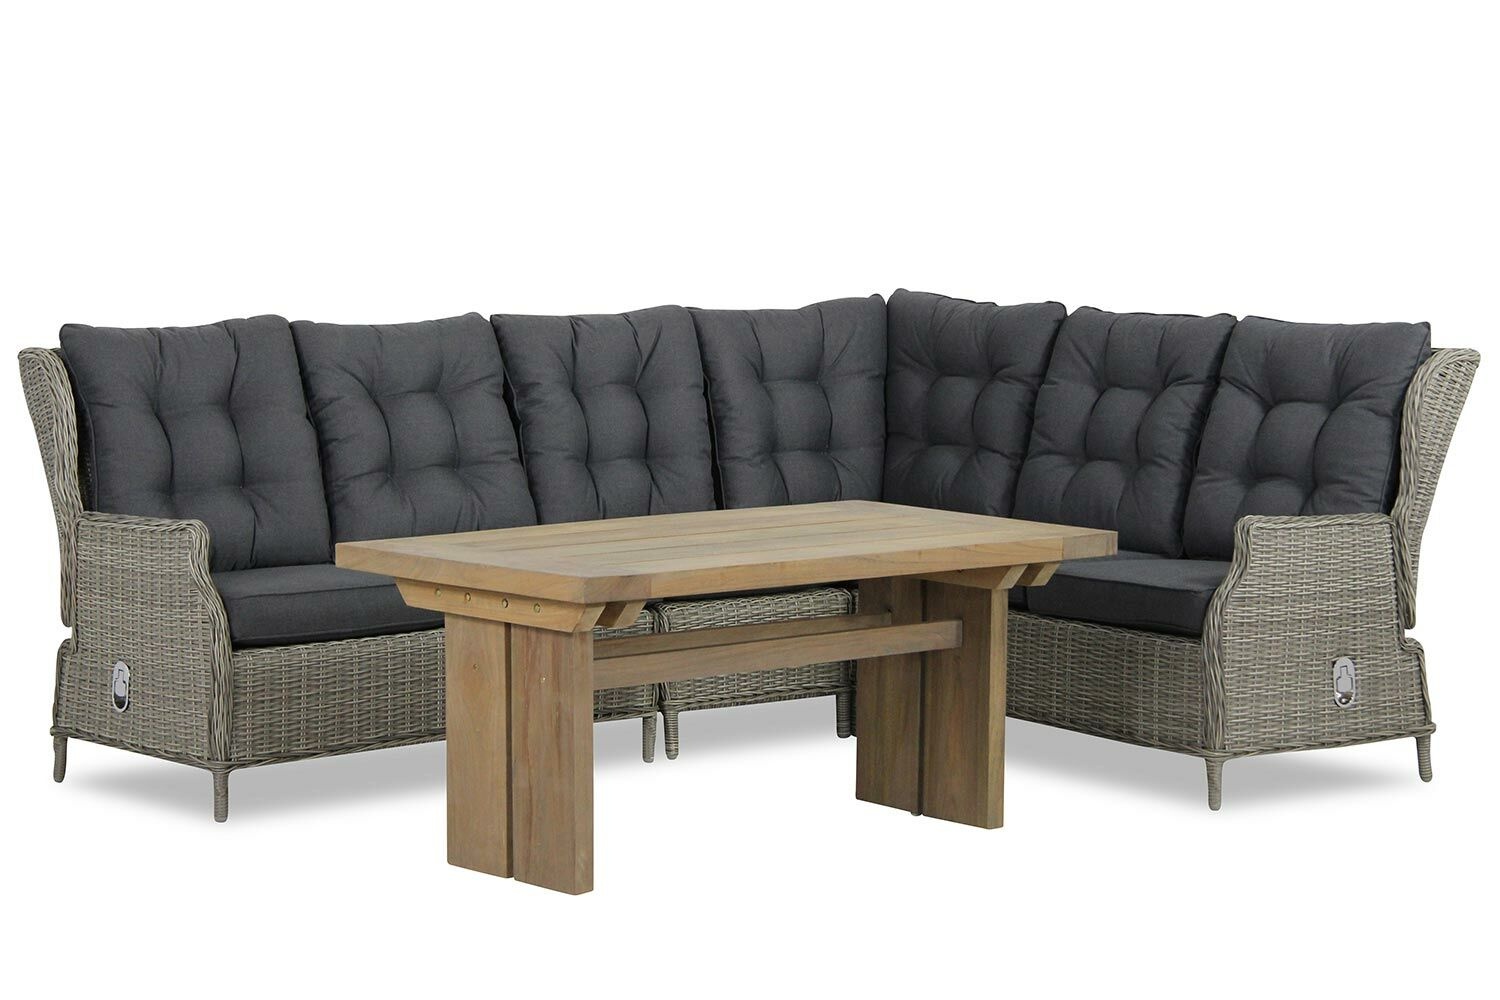 Garden collections new castle brighton dining loungeset 5 delig